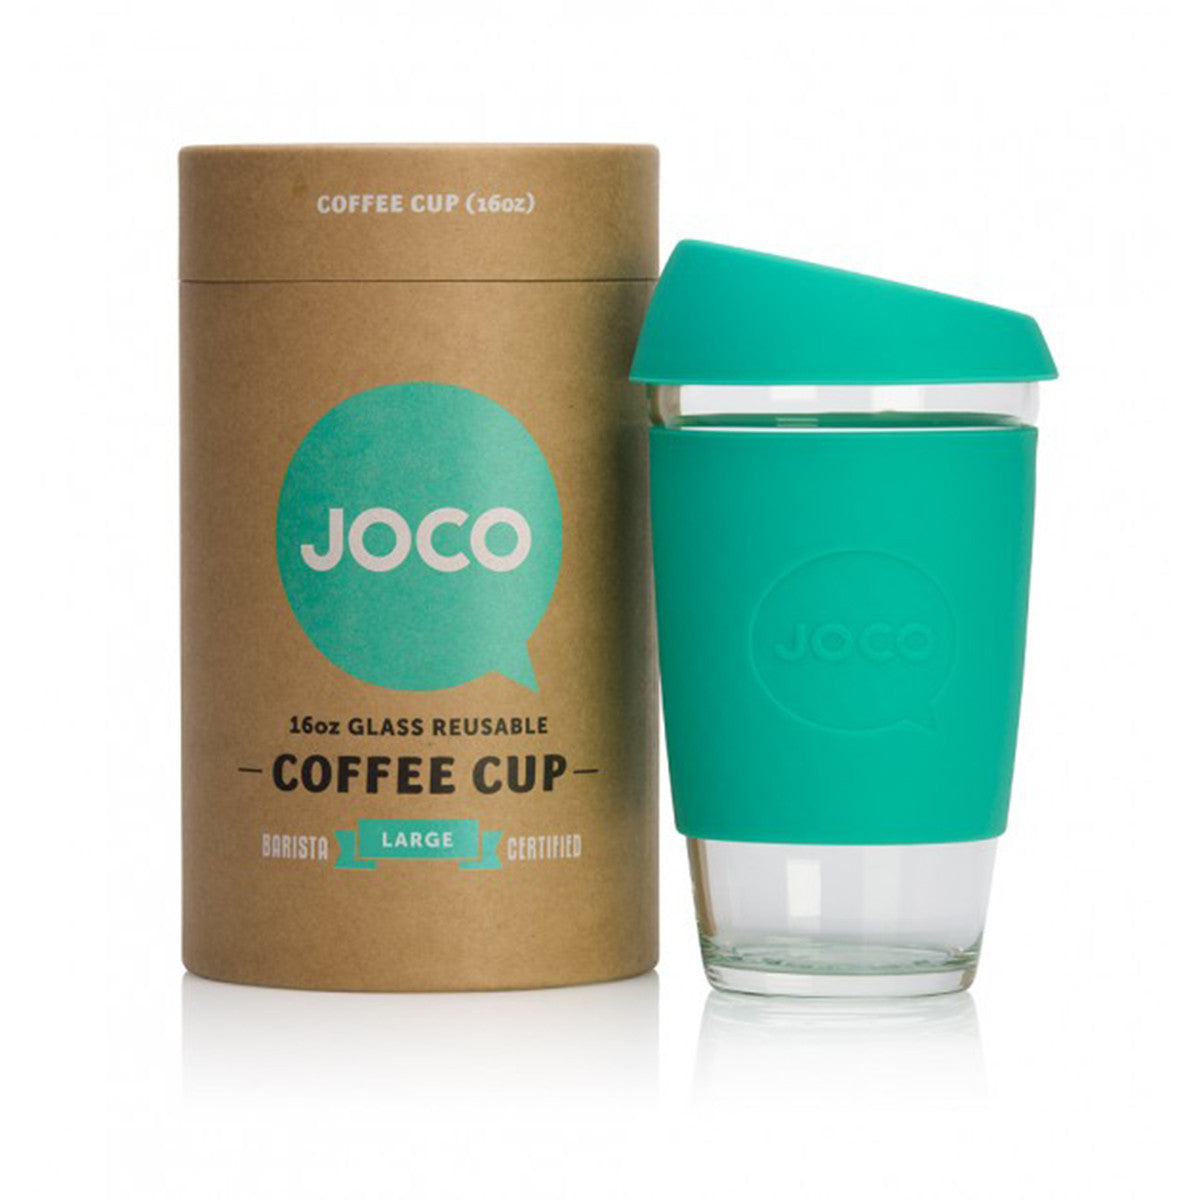 Joco Cup Reusable Glass Cup 16oz Joco Coffee & Tea Cups Mint at Little Earth Nest Eco Shop